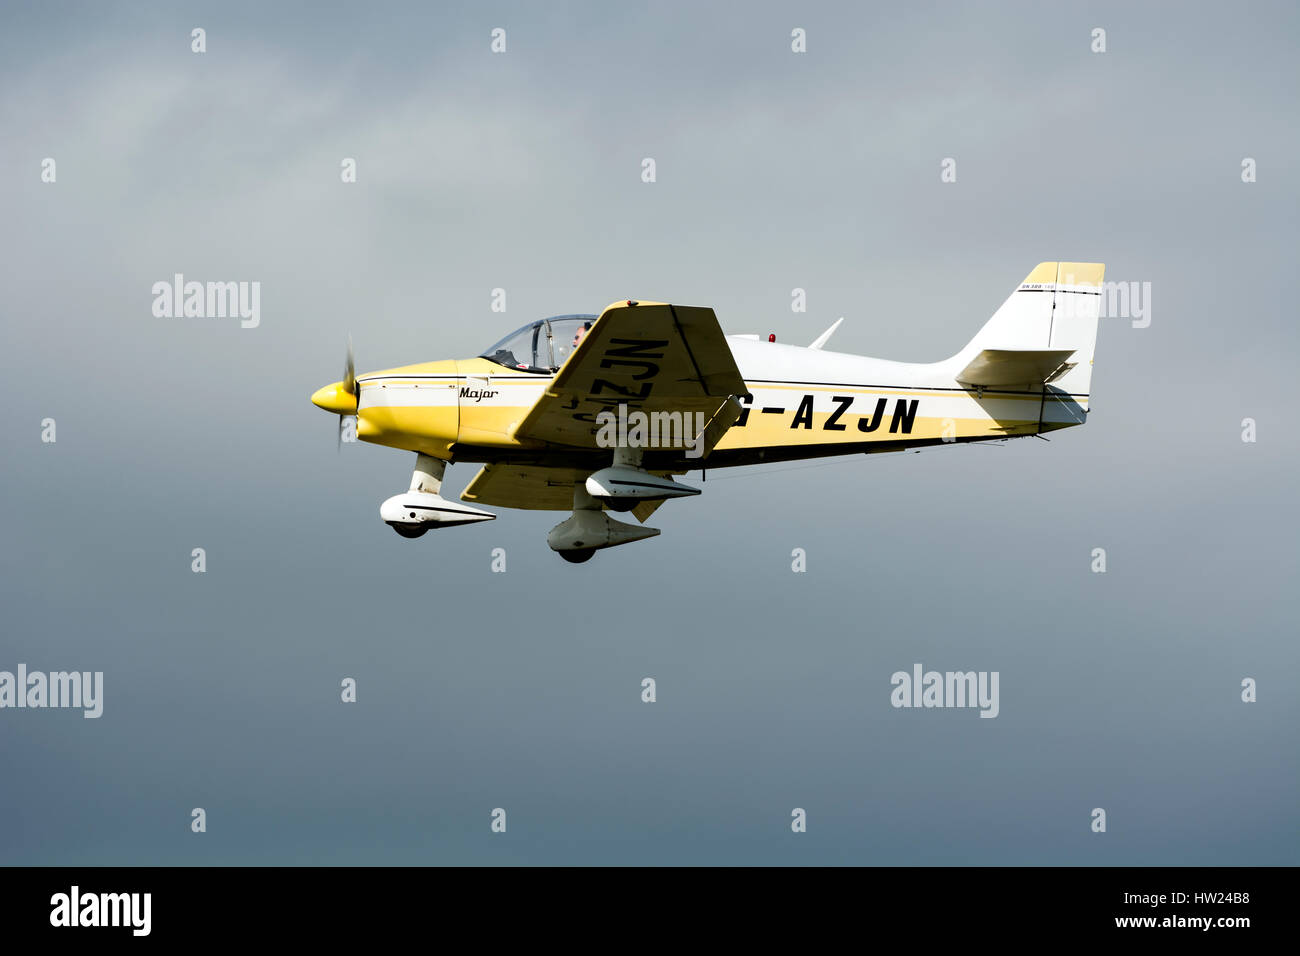 Robin DR300-140 at Staverton airfield, Gloucestershire, UK (G-AZJN) - Stock Image